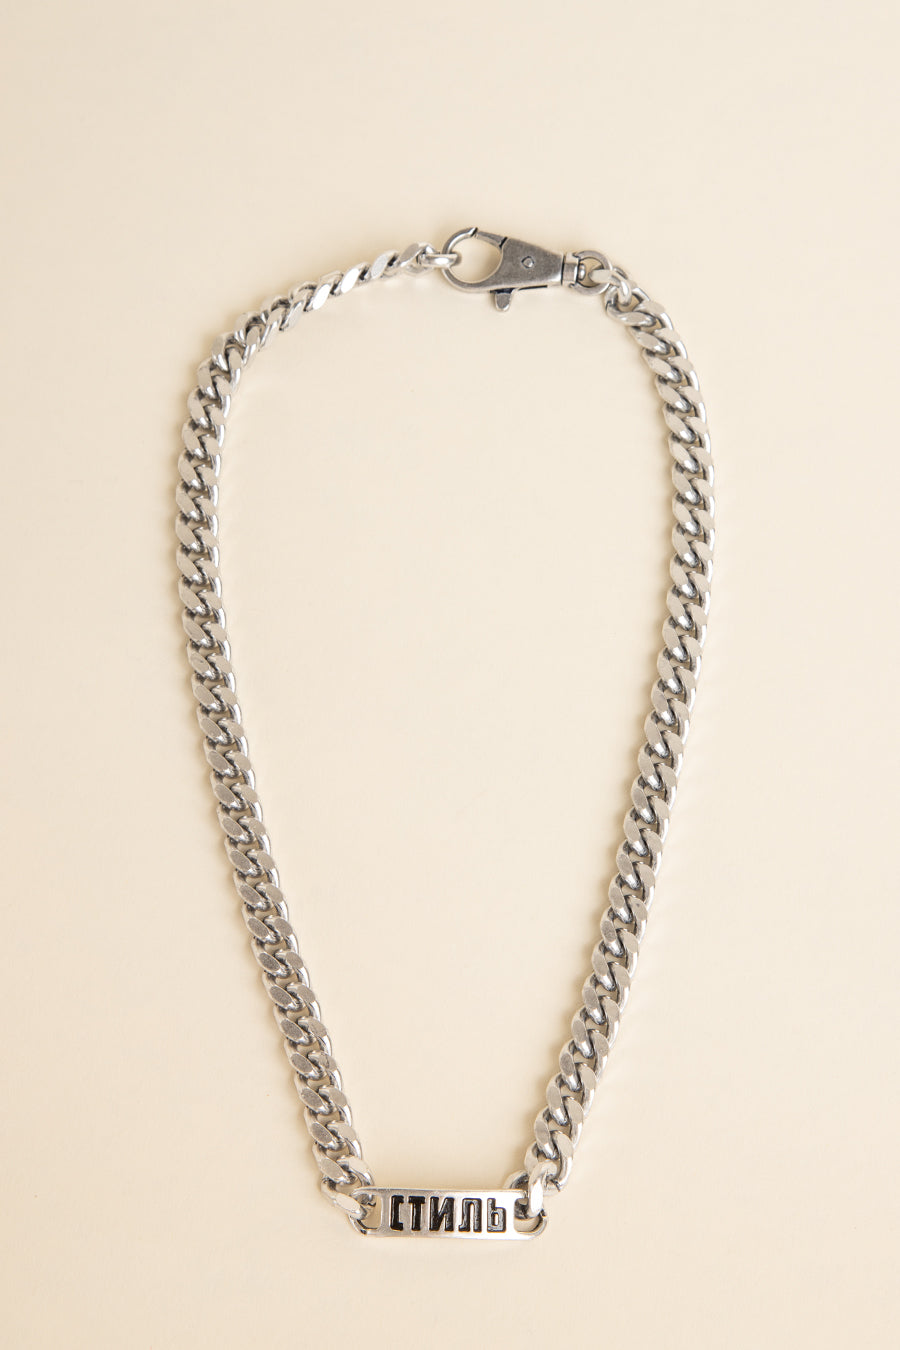 Heron Preston - Silver CTNMb Chain Necklace